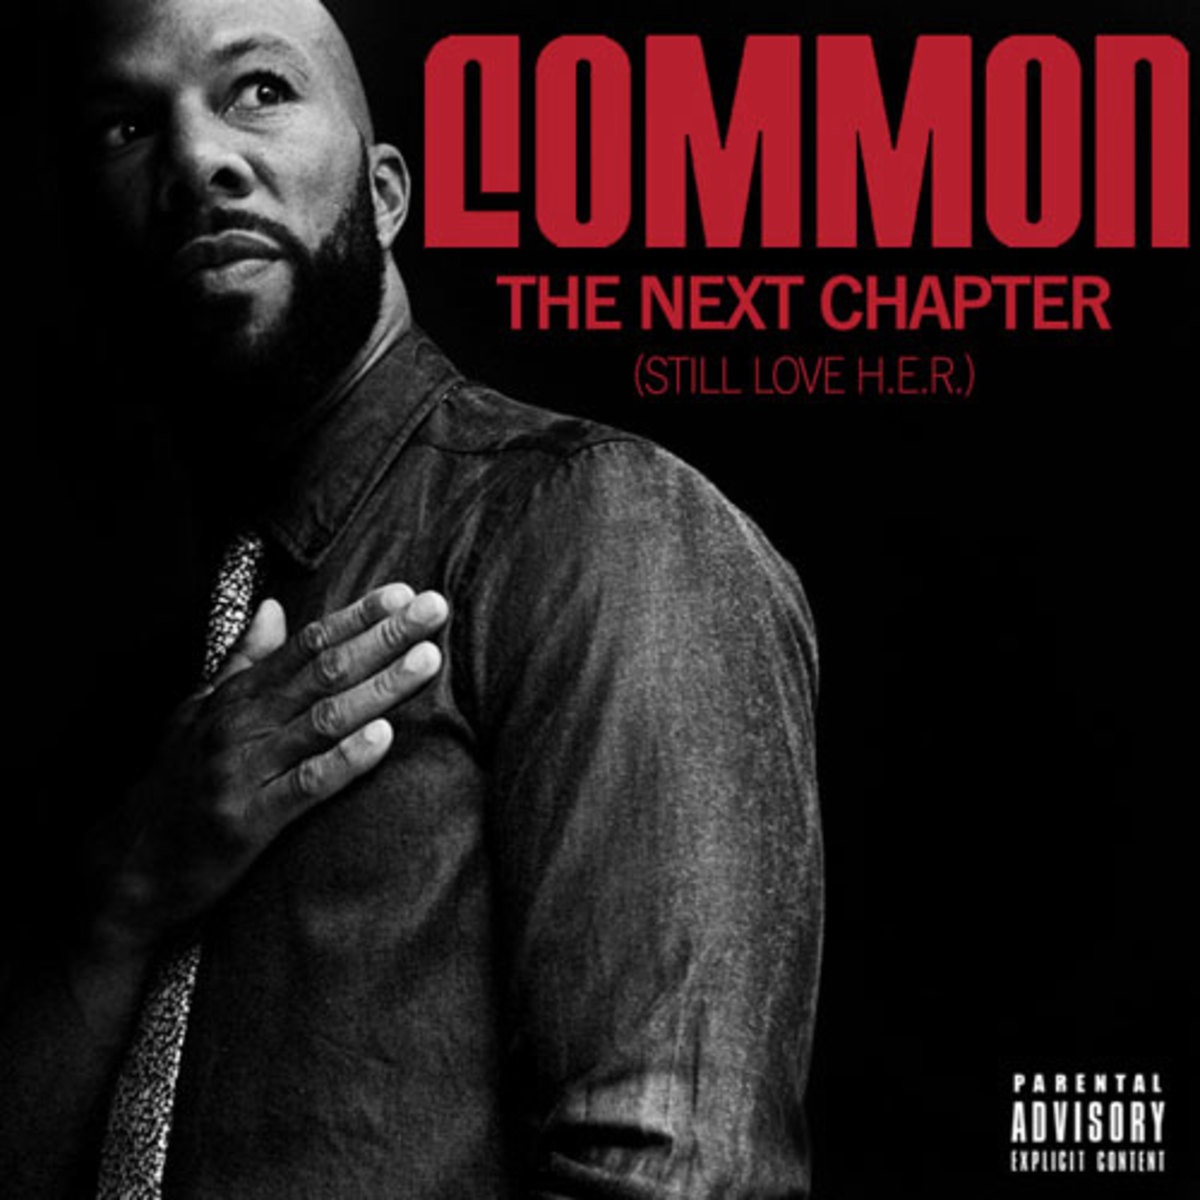 common-thenextchapter.jpg